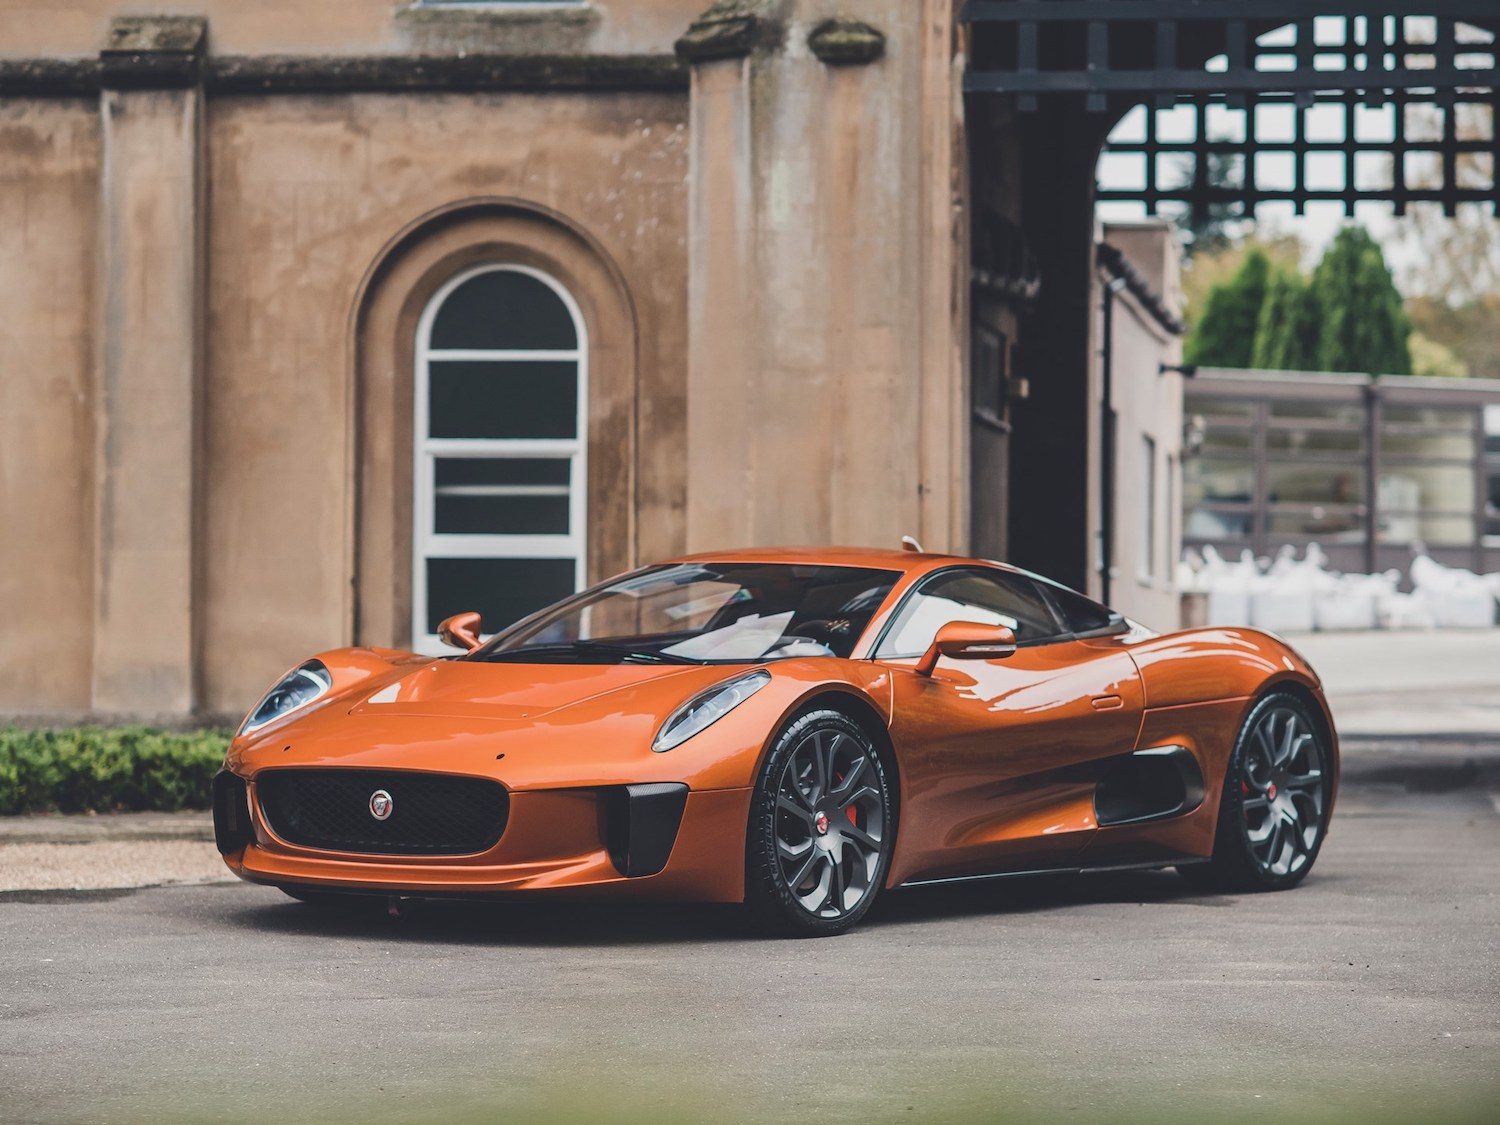 2015 Jaguar CX-75 Spectre